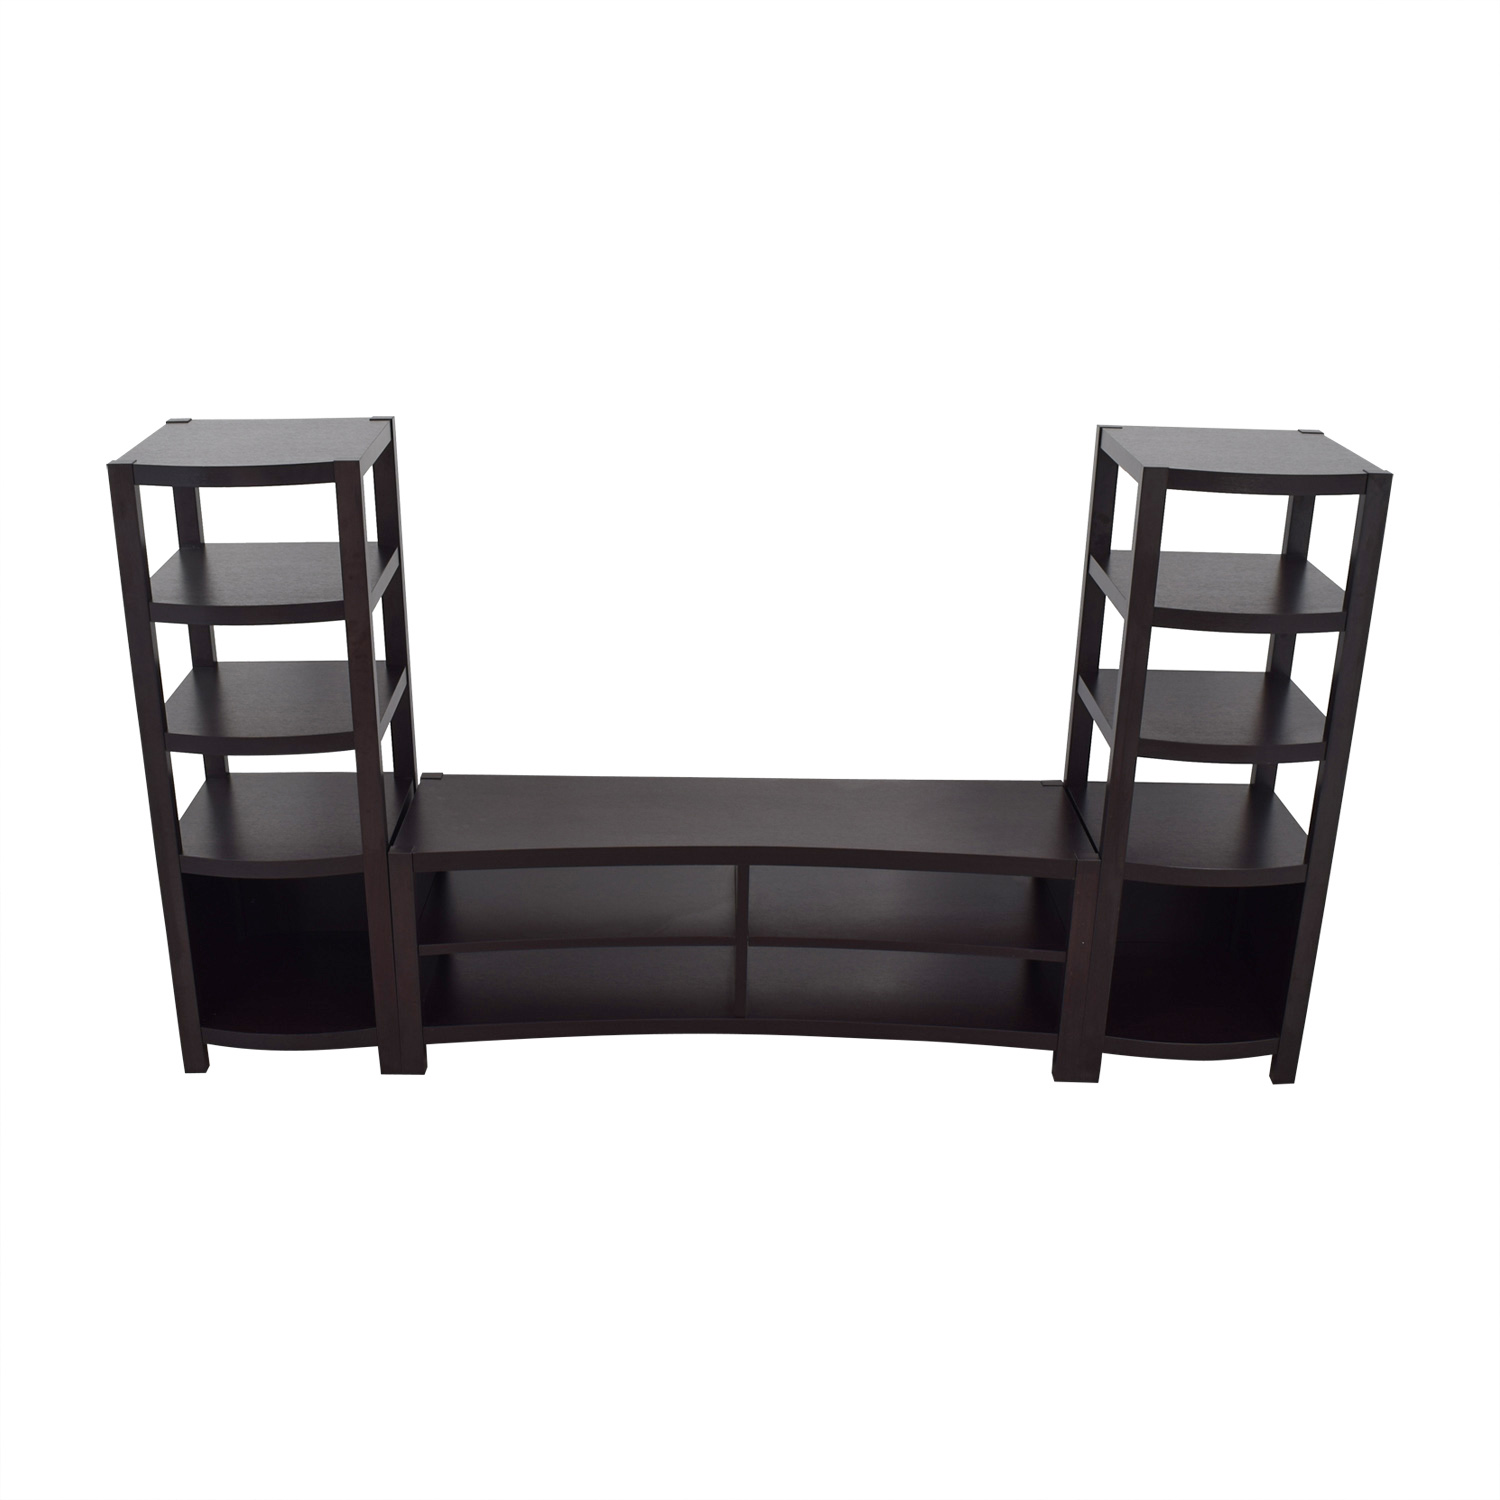 Black Curved Media Console with Towers sale